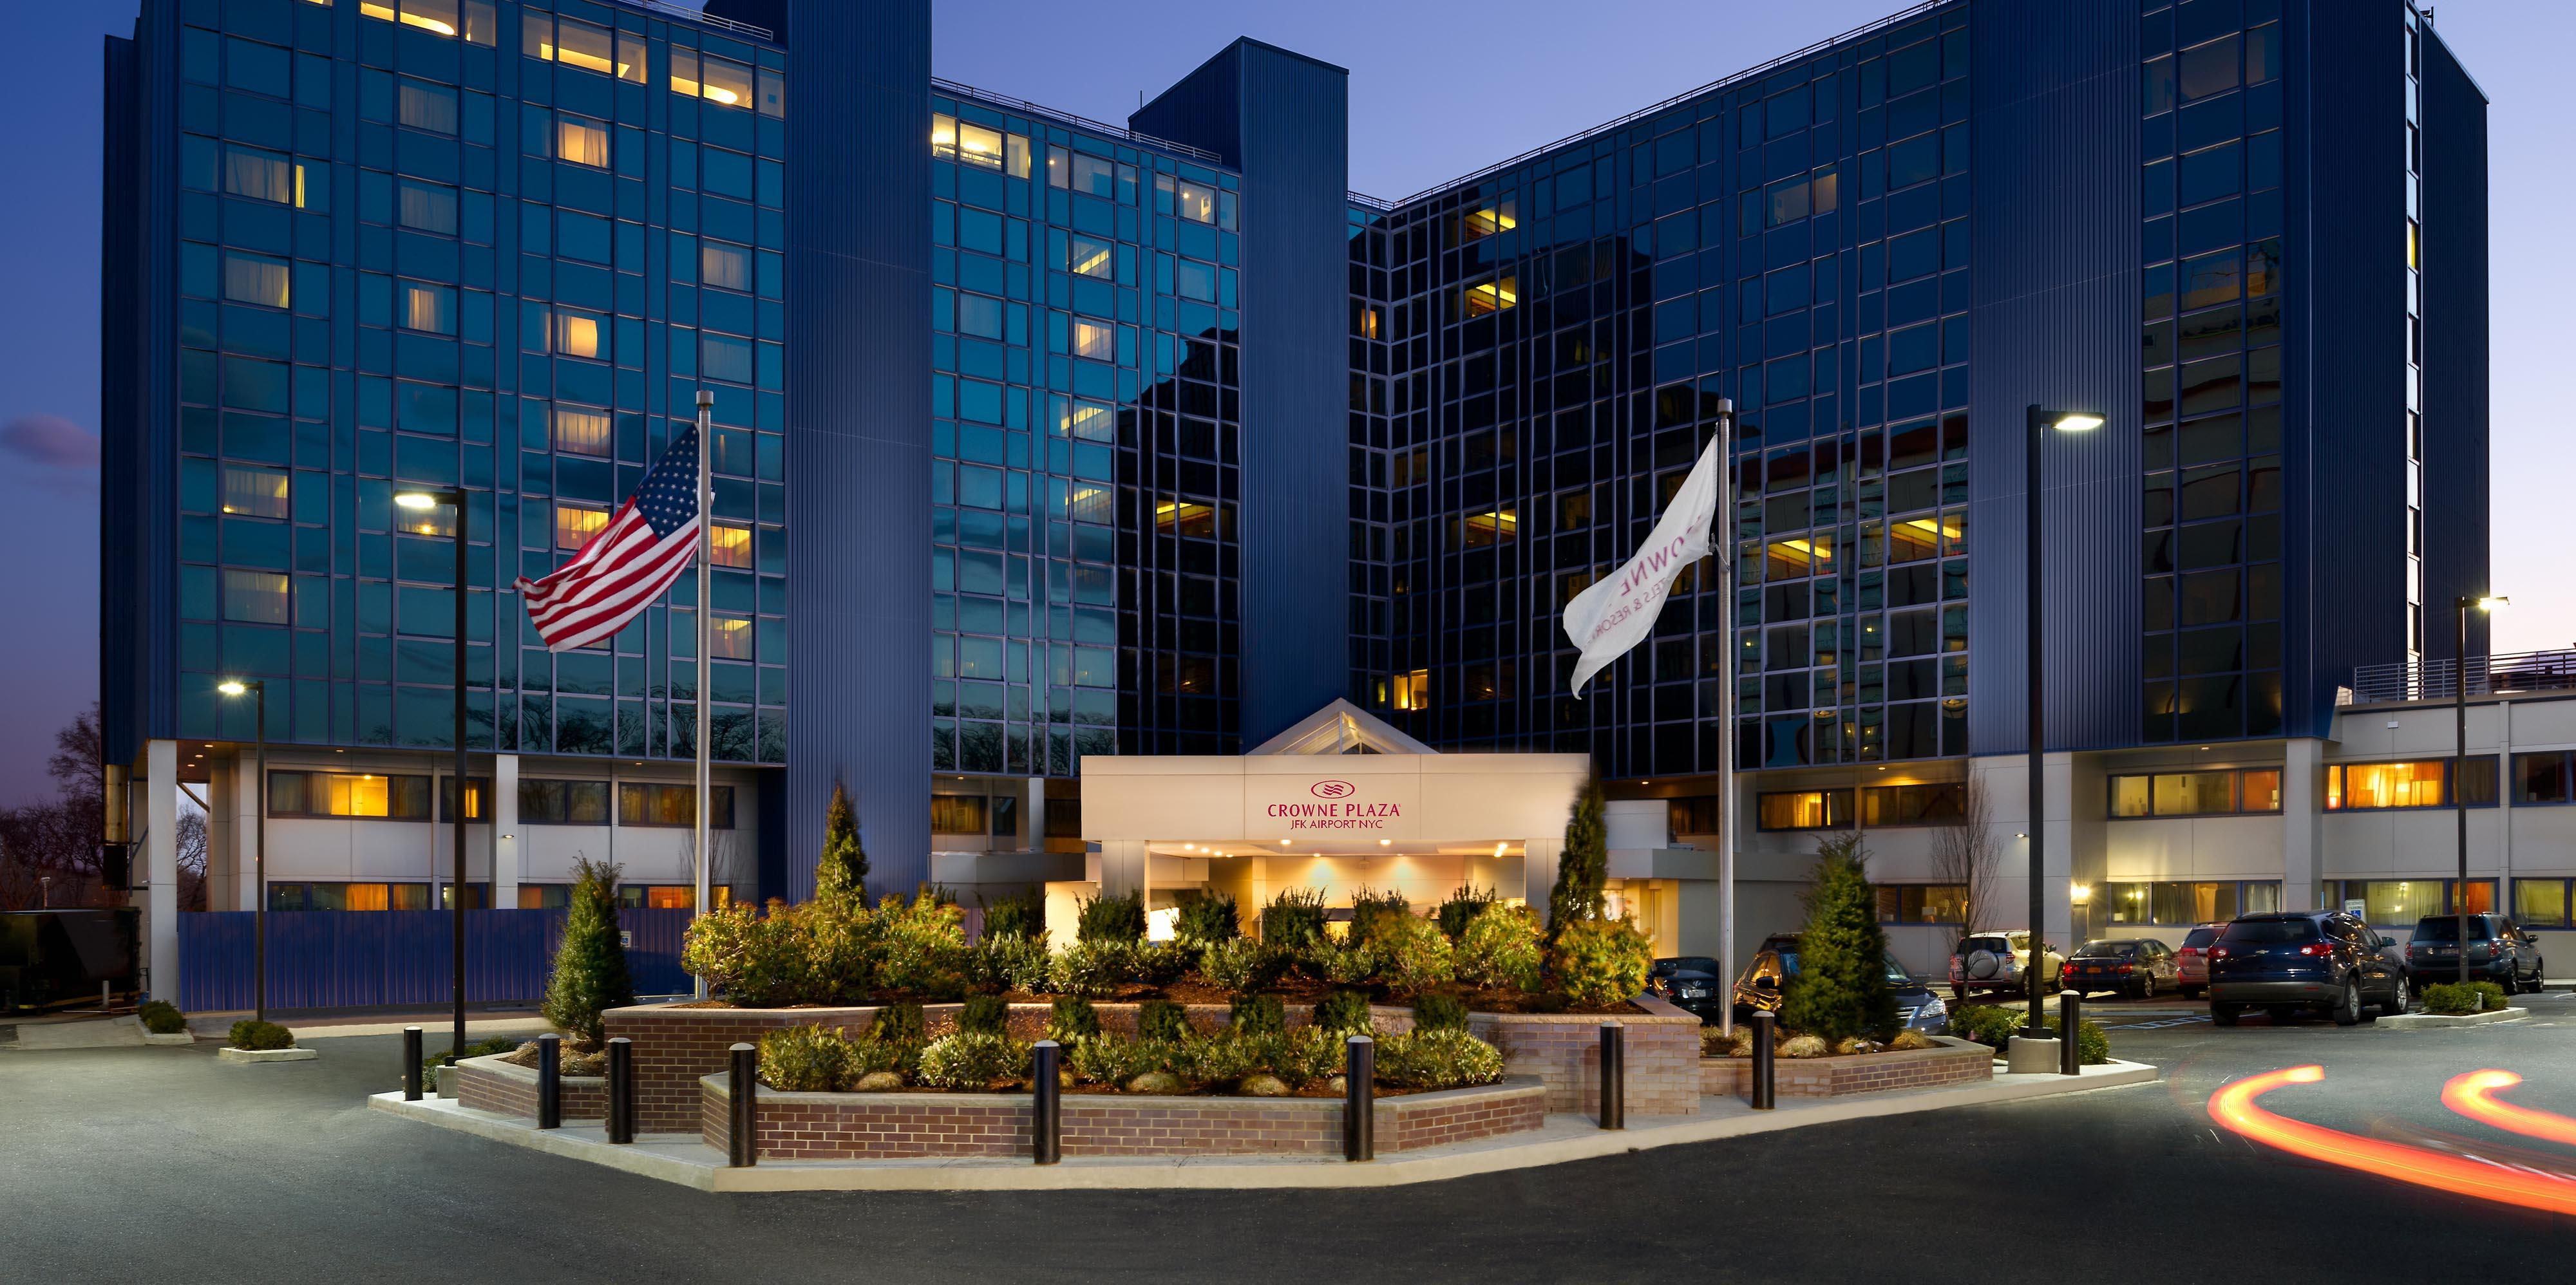 Crowne Plaza Jfk Airport Nyc Hotels In Jamaica